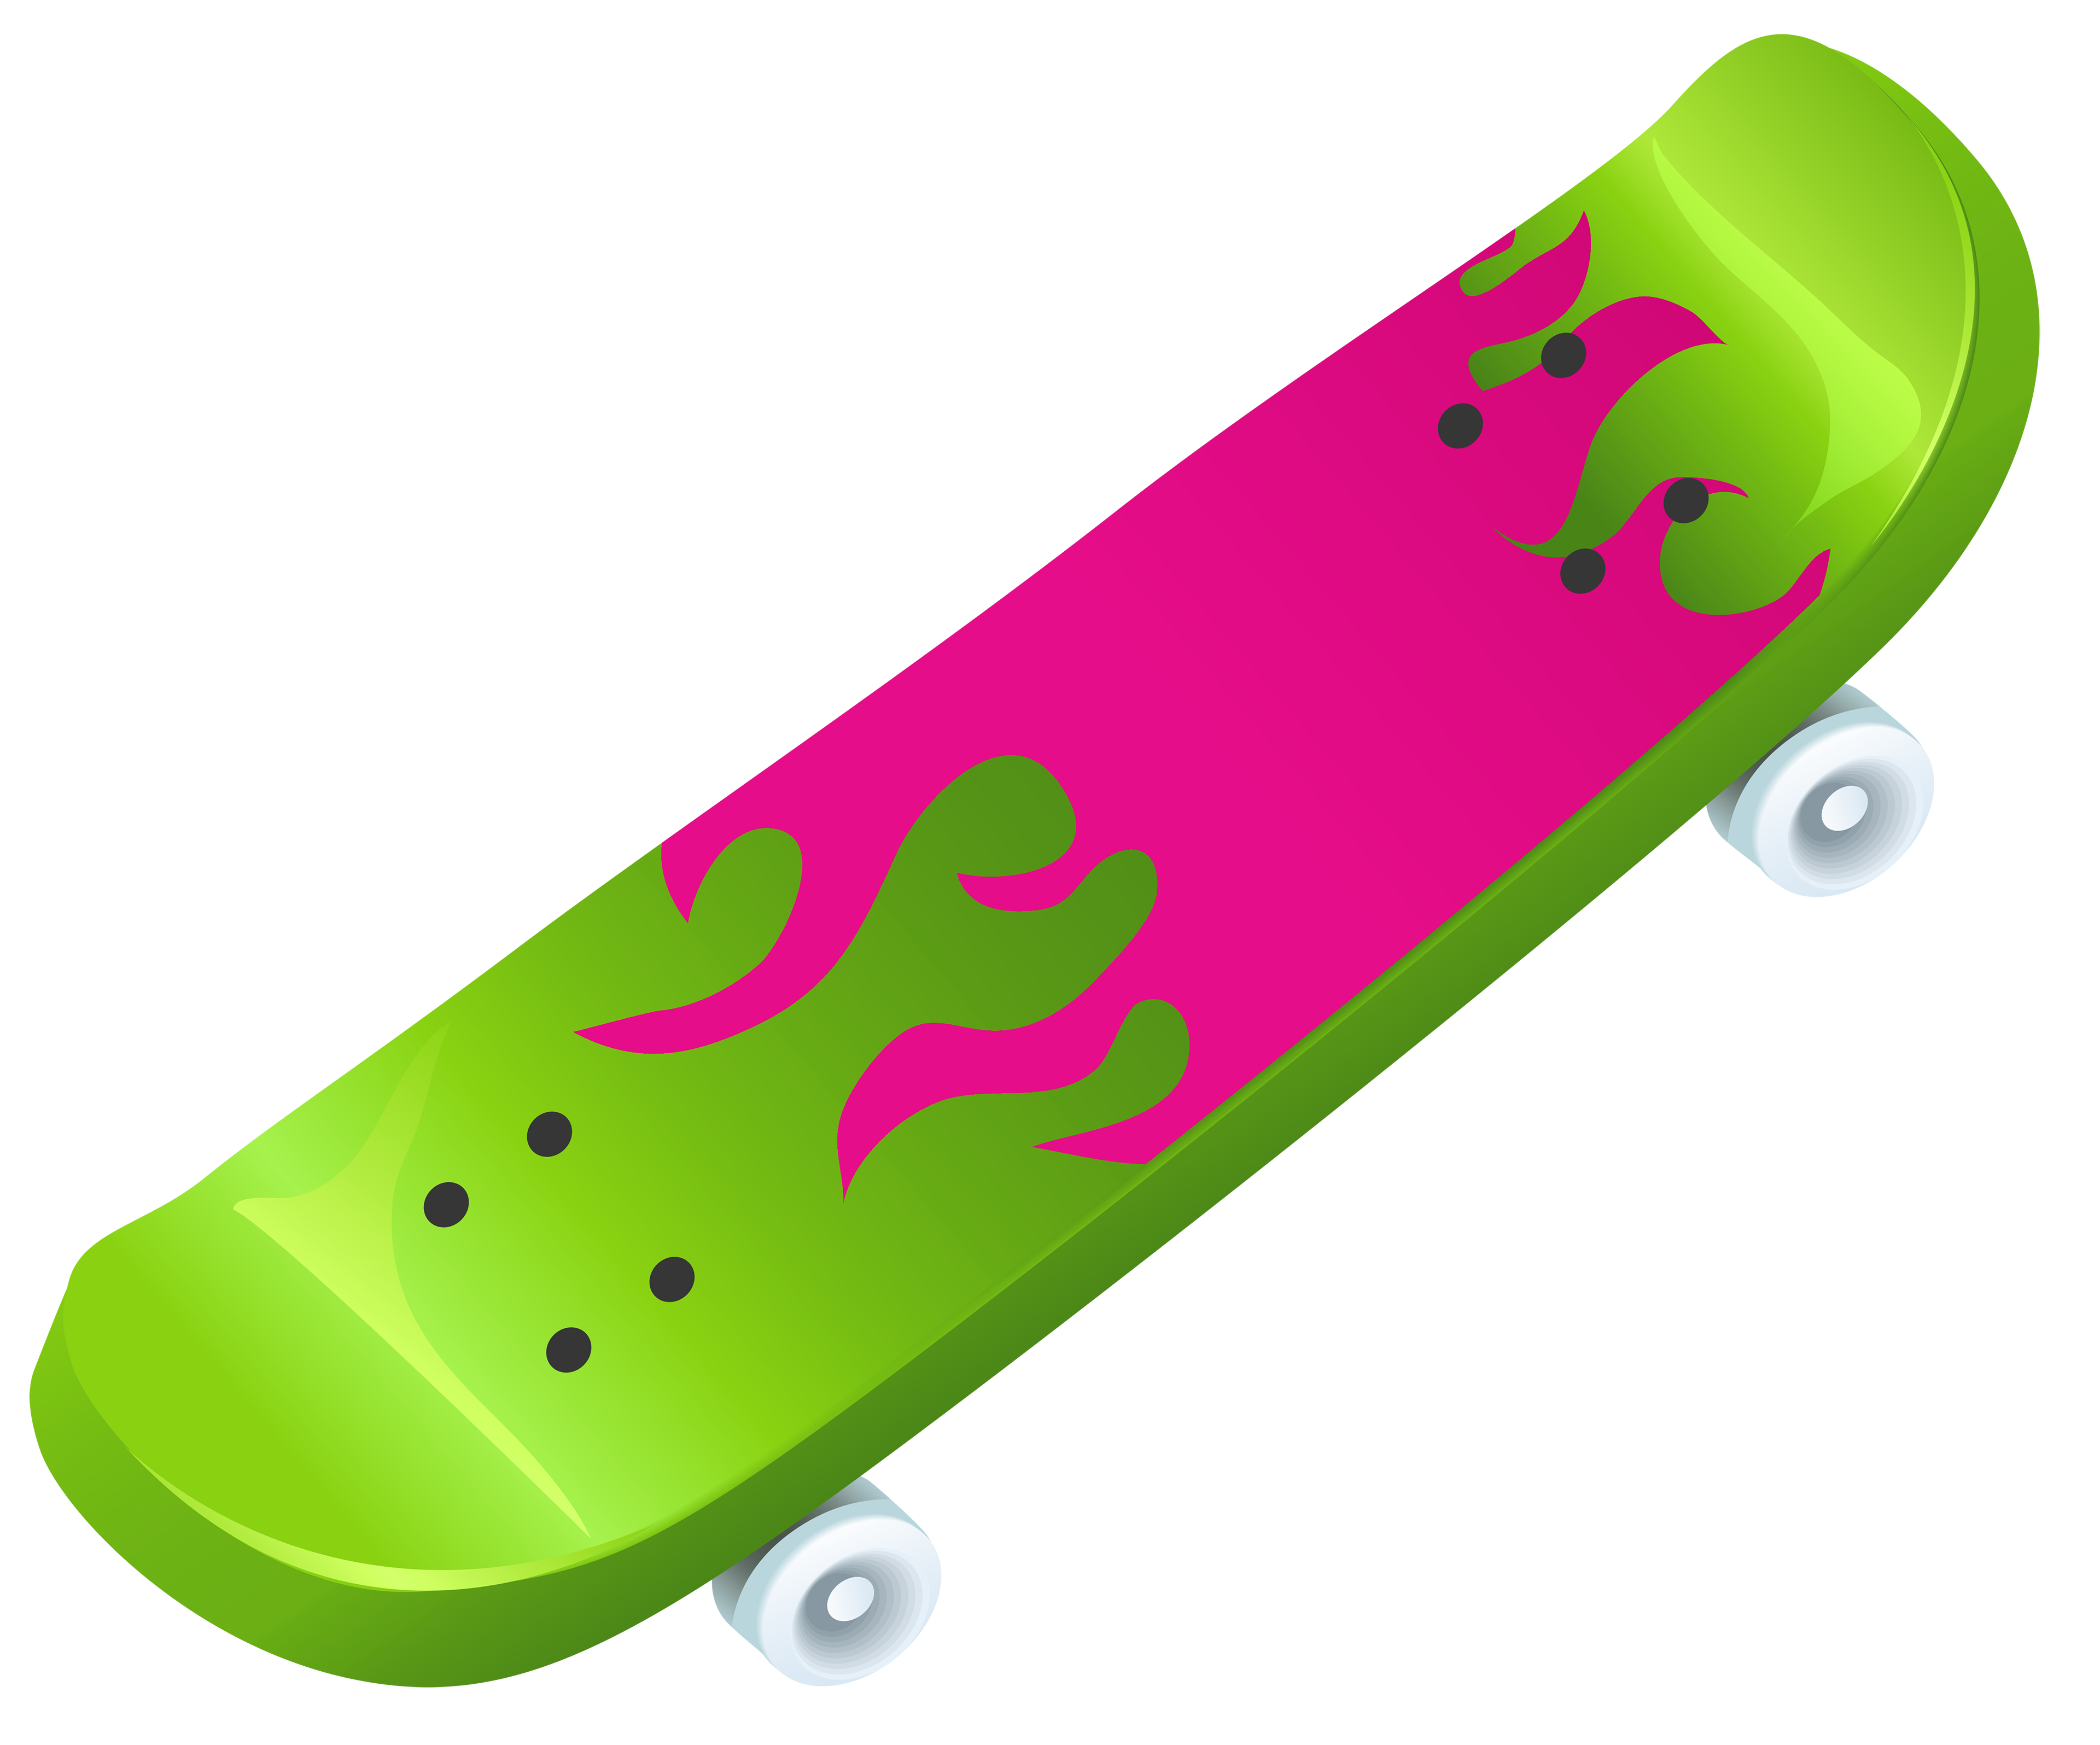 3840x3191 Skateboard Clipart Free Images Image 3